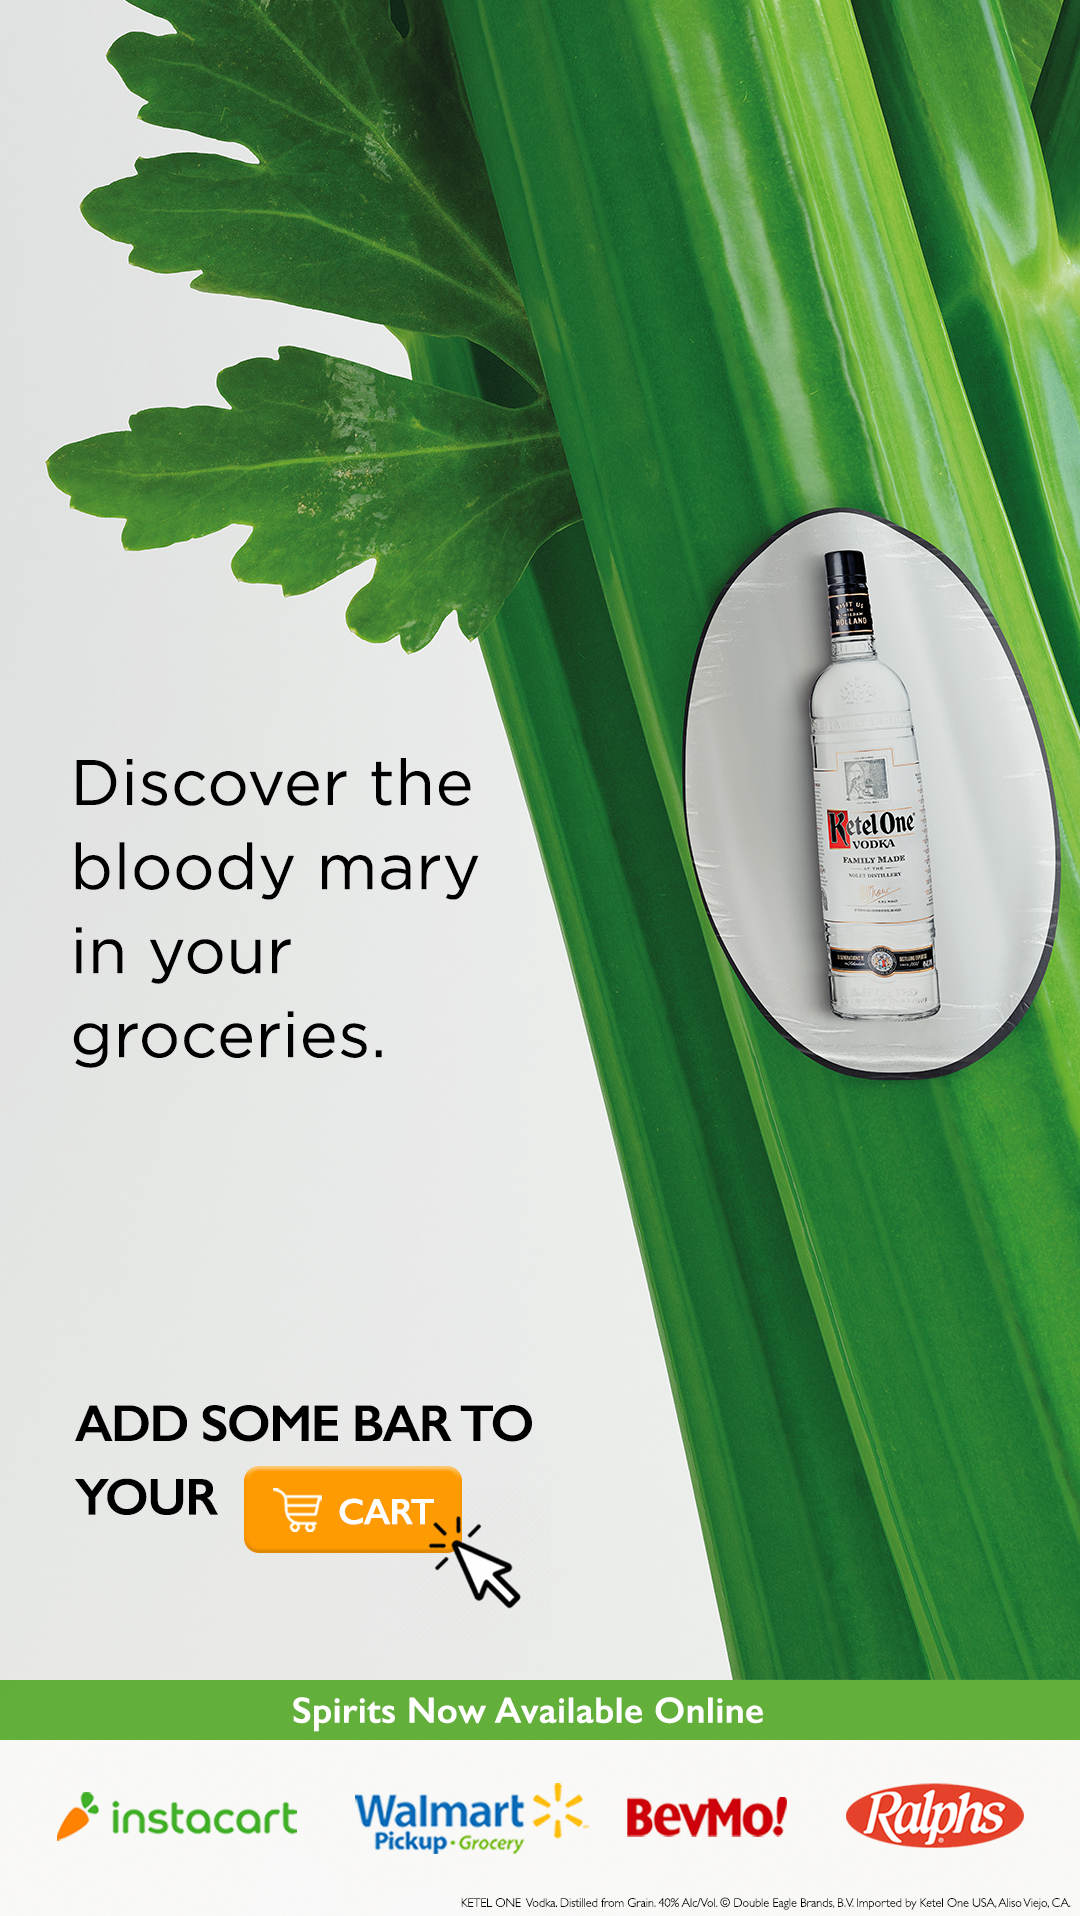 SD_Retail_Ketel One_1080x1920.jpg